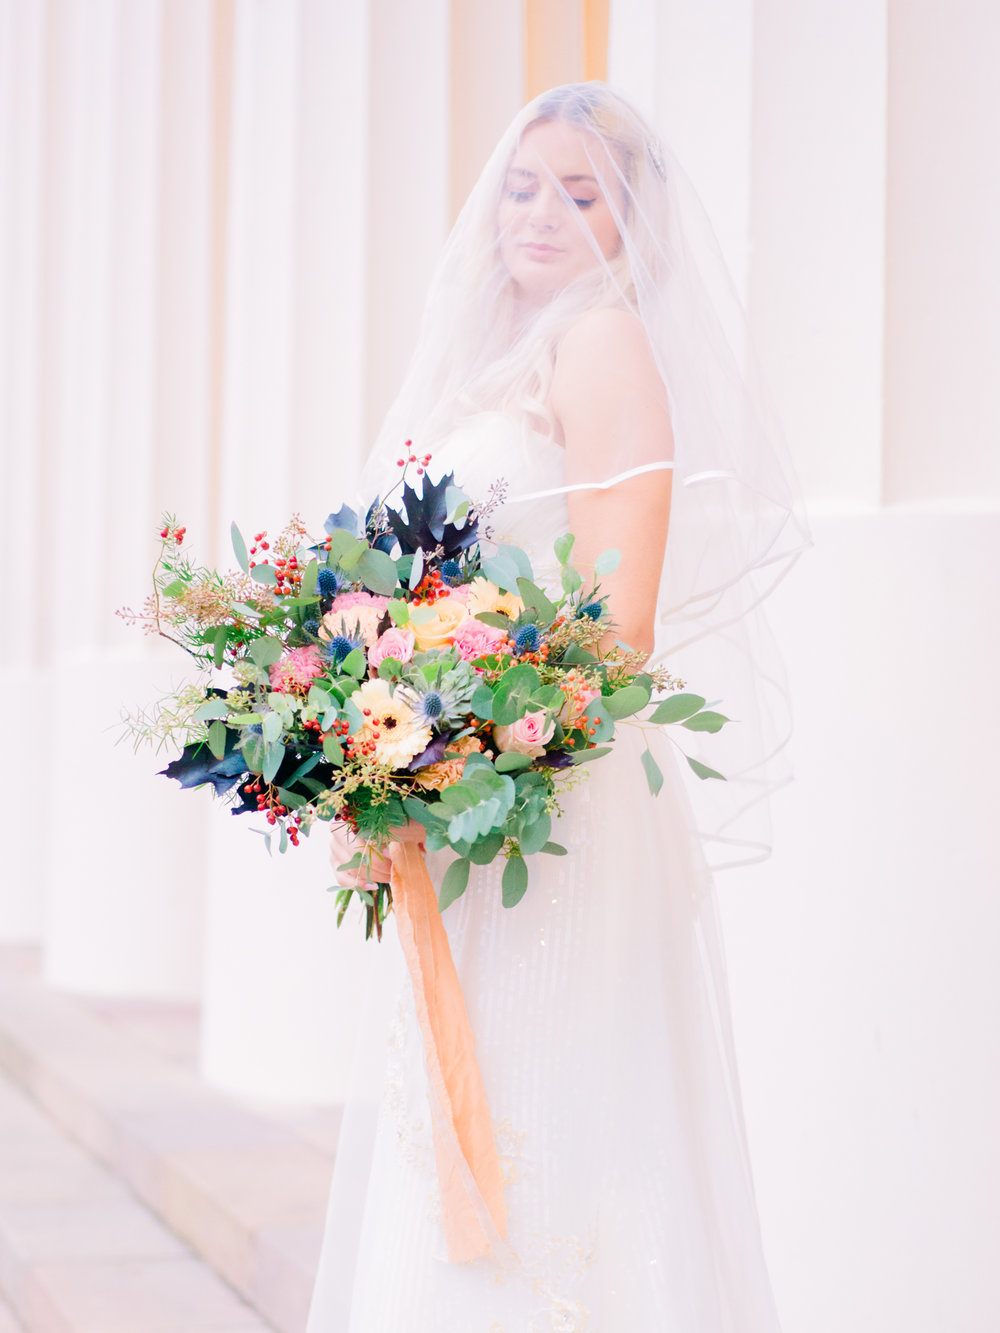 Elegant Organic Fall Swedish Bridal Wedding Styled Shoot - Erika Alvarenga Photography-68.jpg